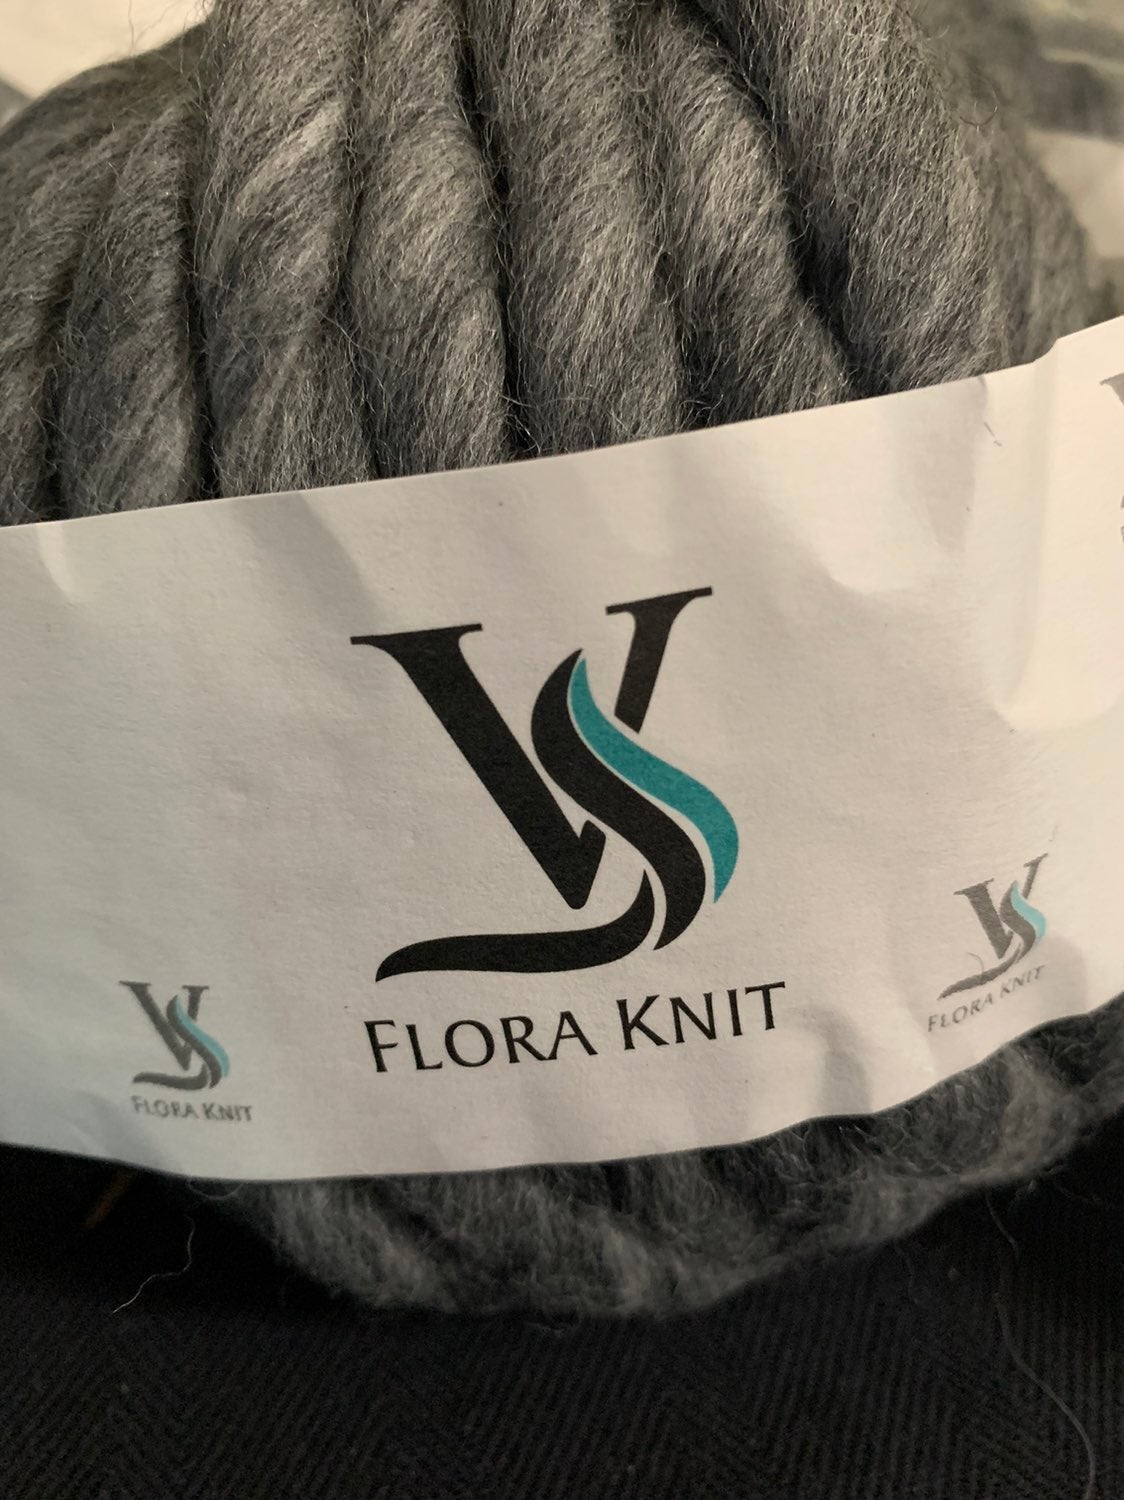 Flora Knit Merino Wool Lot